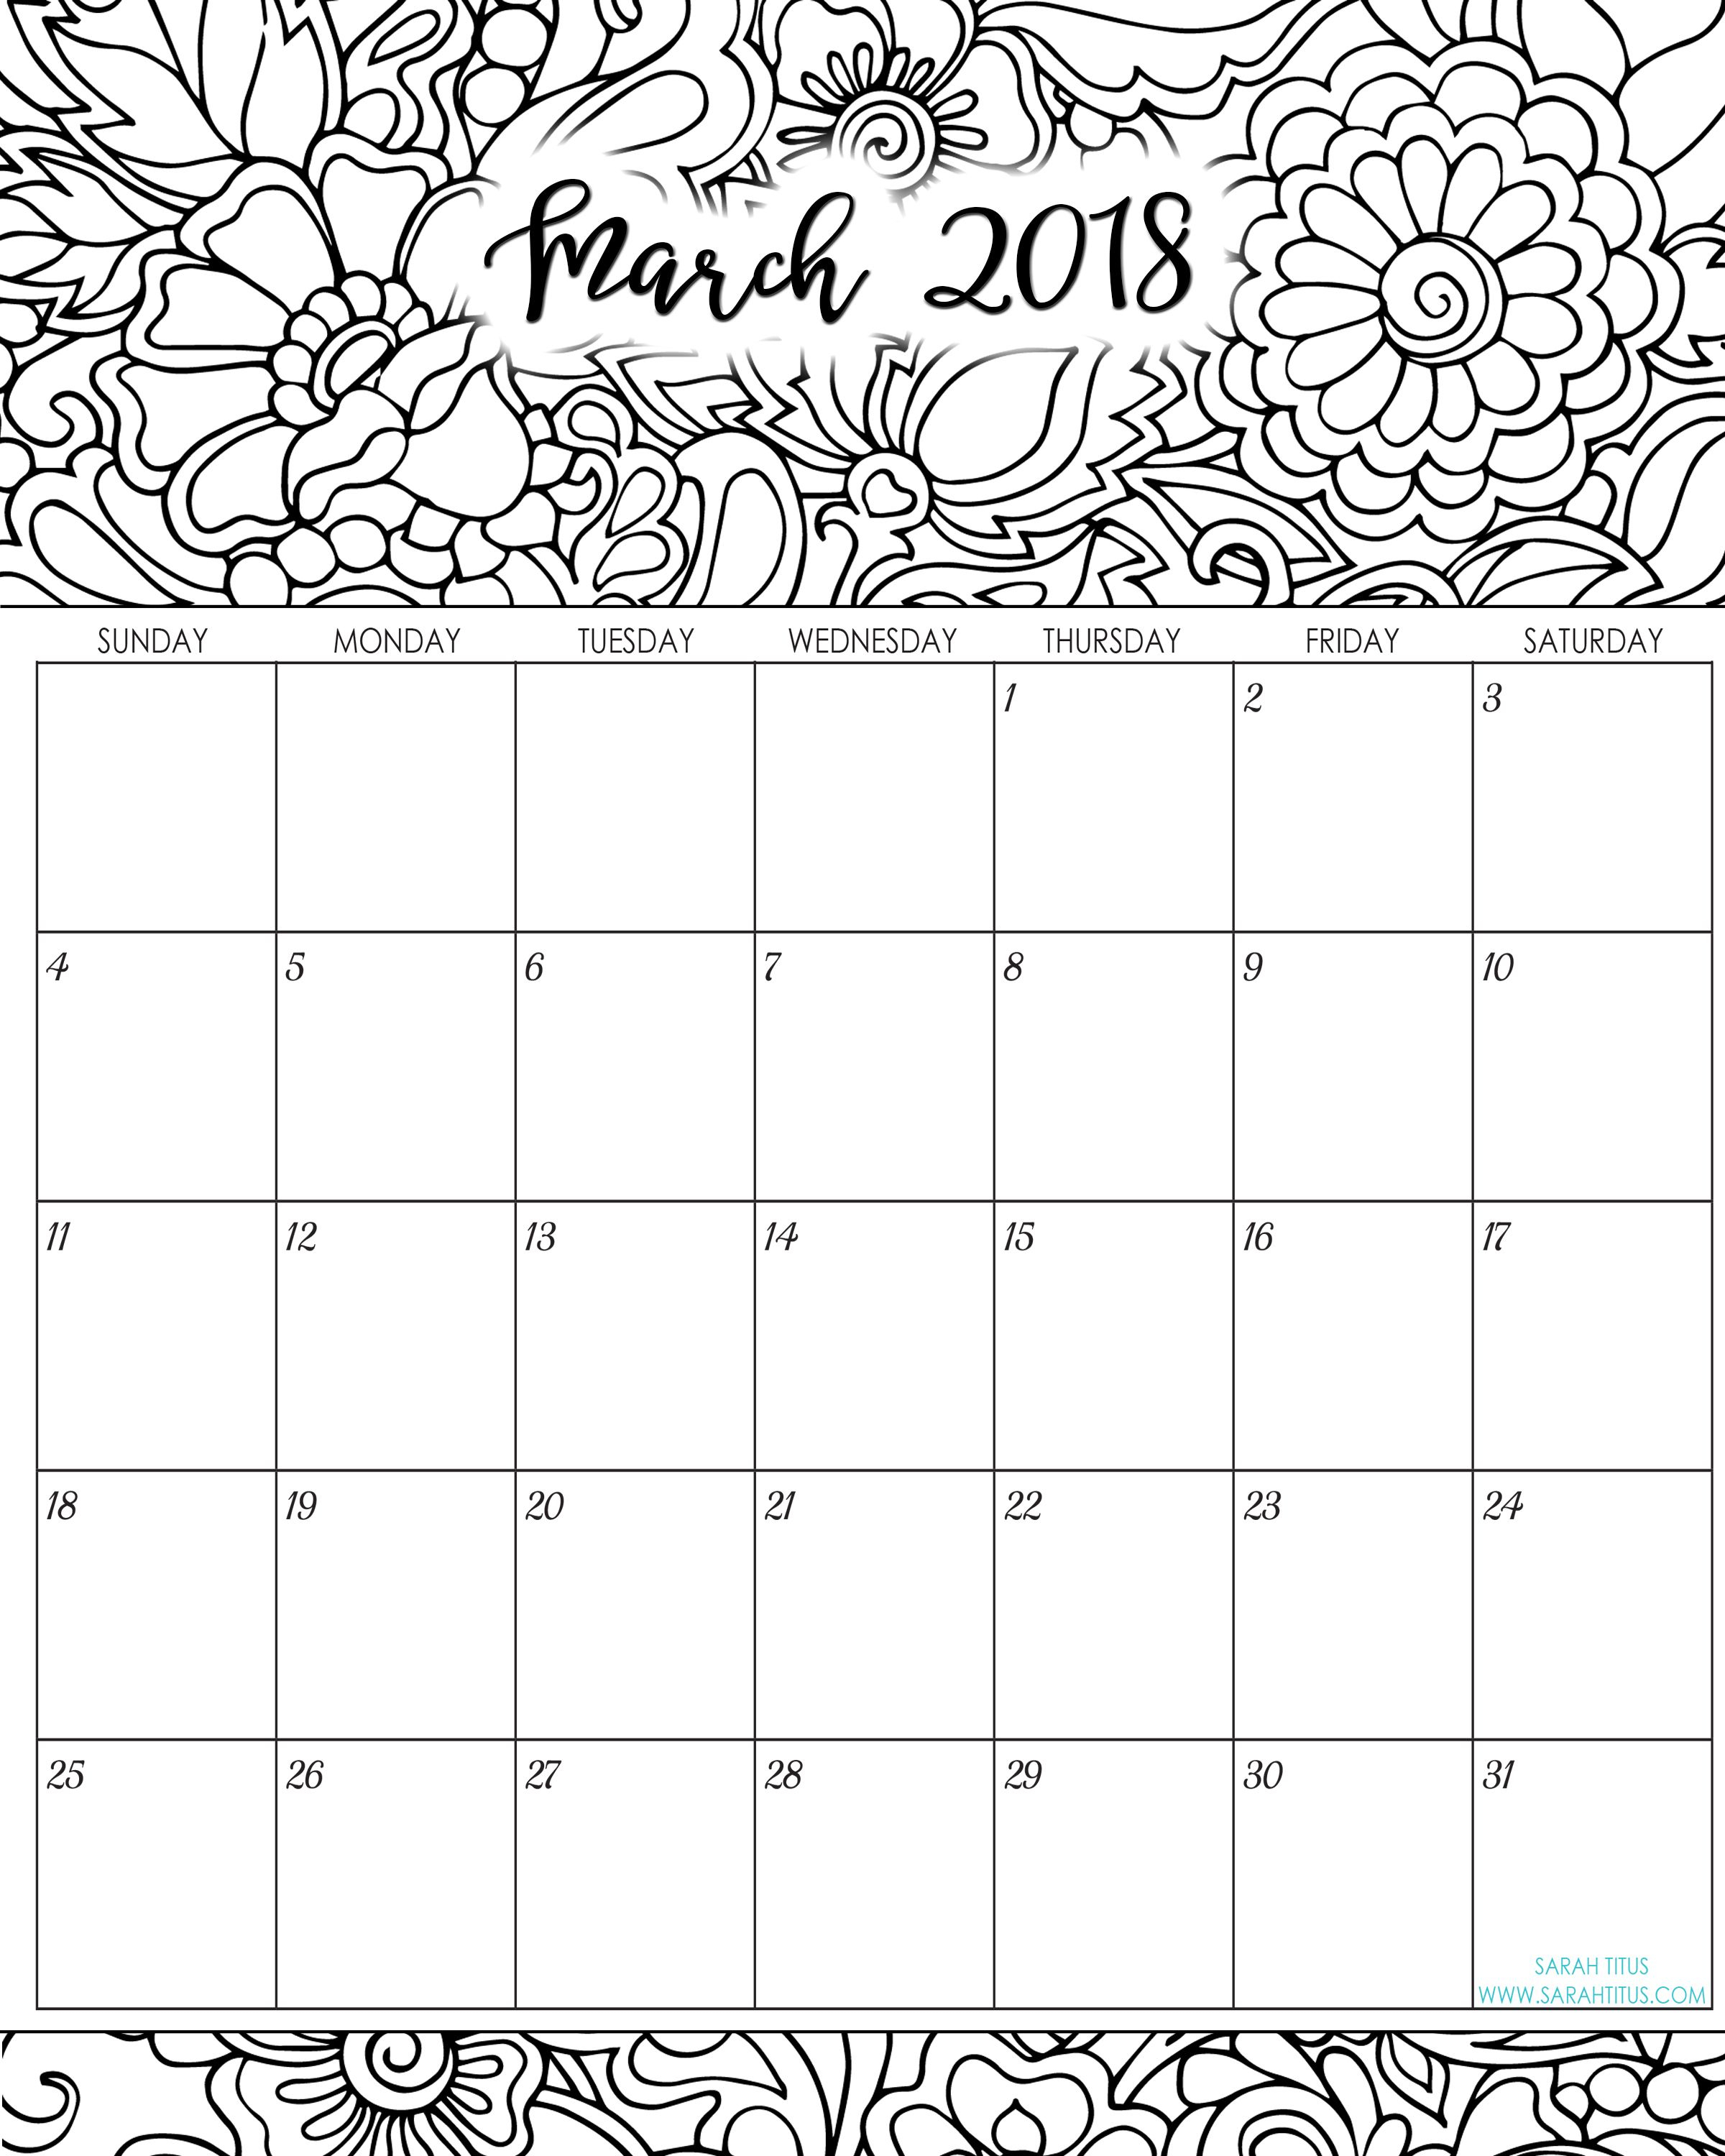 2018 Monthly Coloring Calendars Printables | Free Printable inside Sarah Titus Calendar